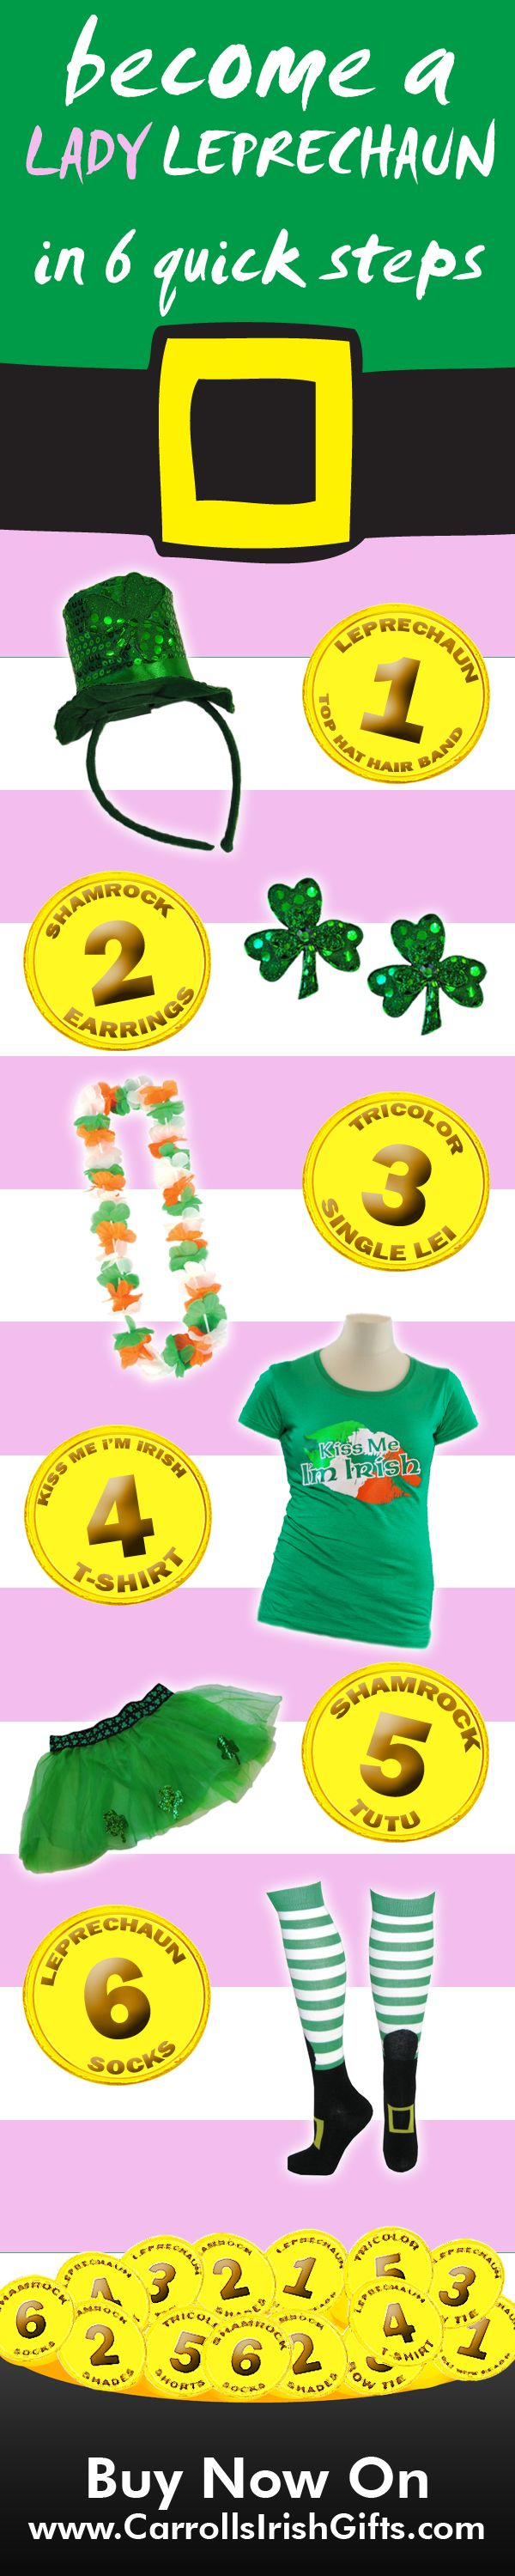 The Leprechaun is a hugely popular Irish icon. To celebrate St. Patrick's Day, and Irishness, we have created a fun 6 step guide to becoming a Female Leprechaun!